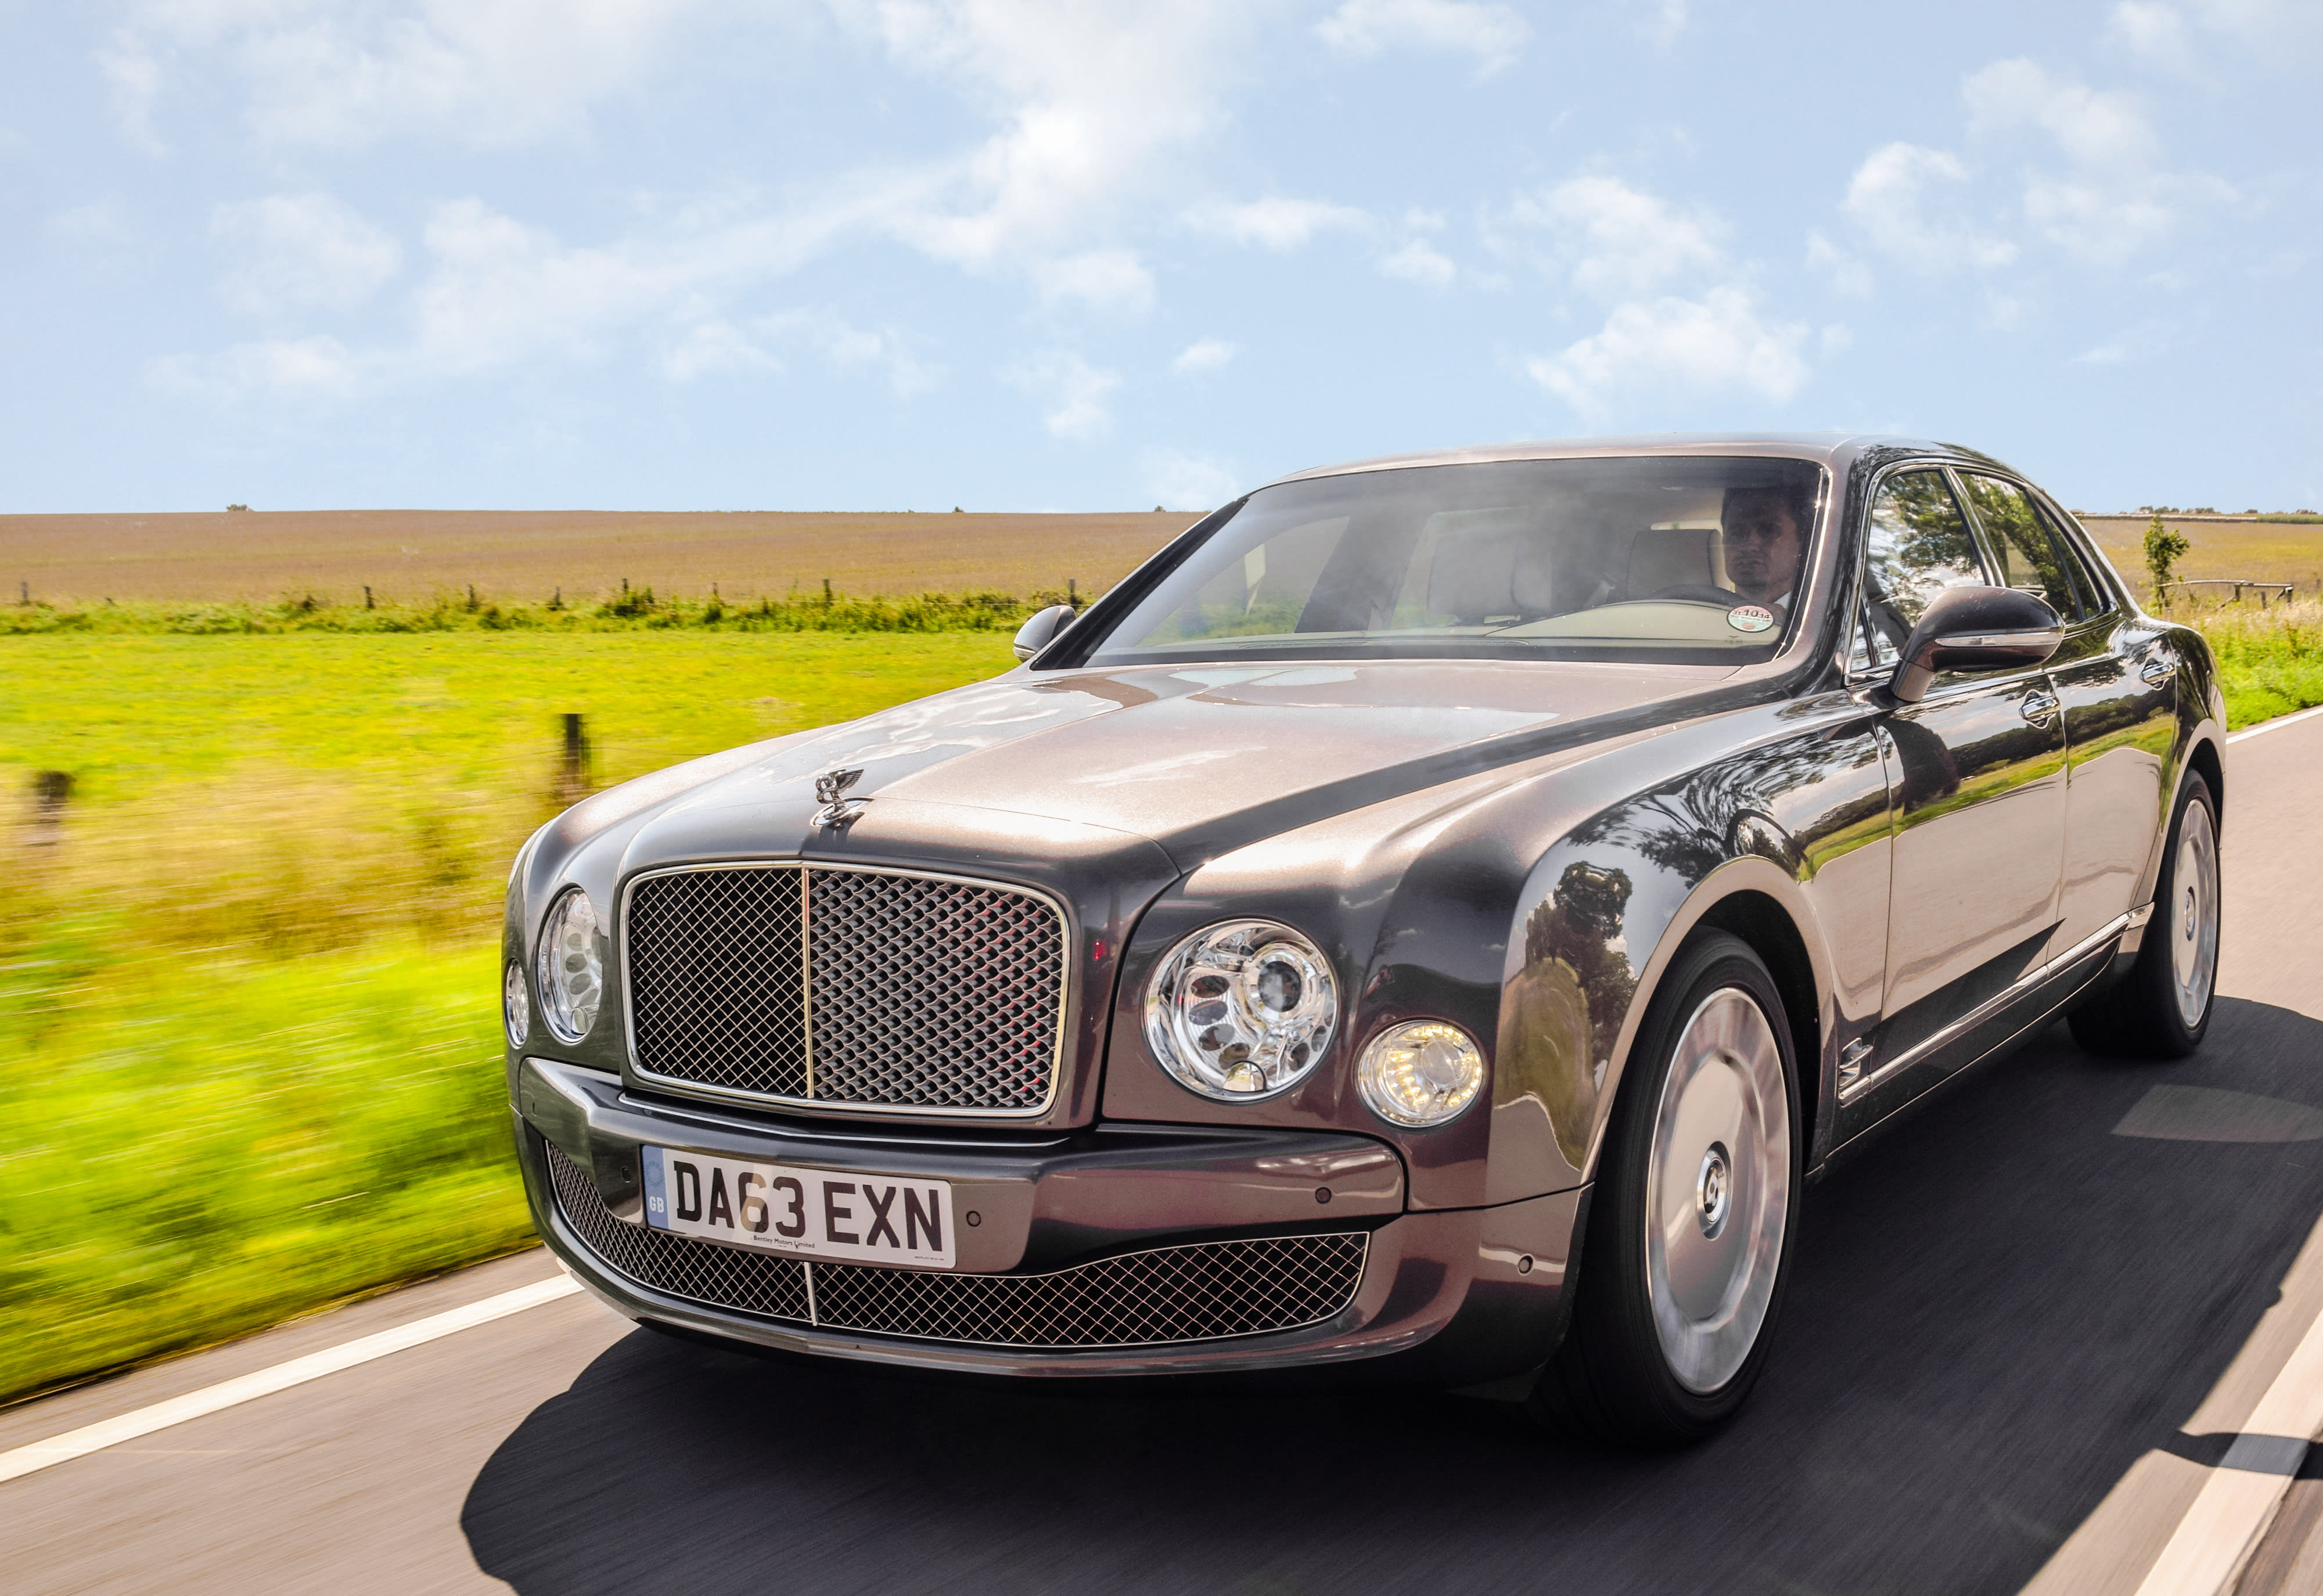 Bentley Recalls Small Batch of Mulsanne Vehicles for Backover Prevention Software Issue